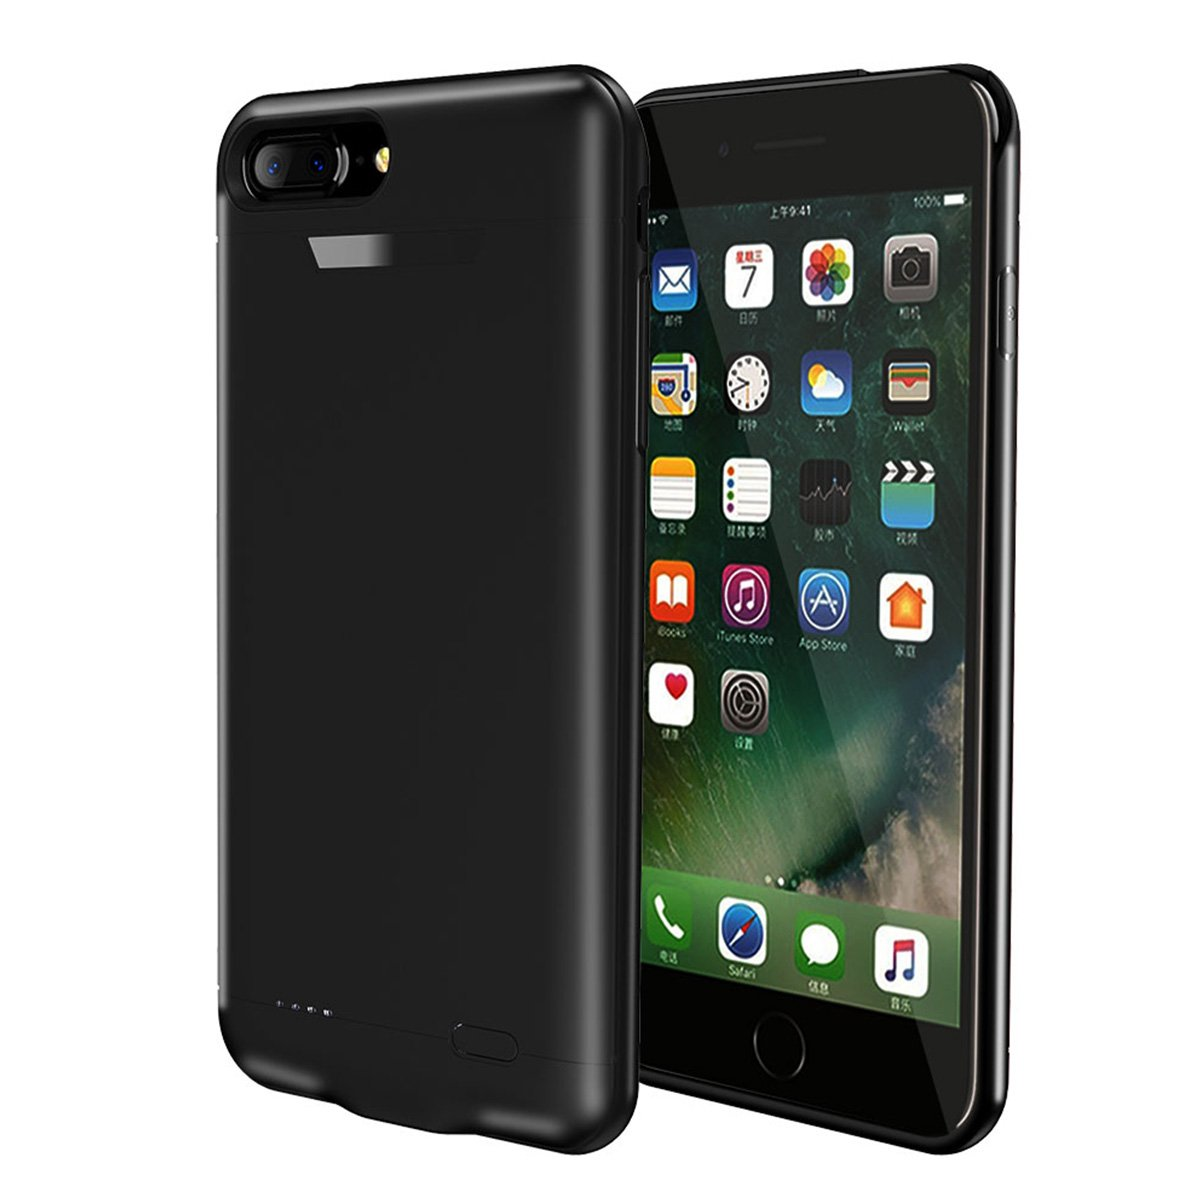 AICEDA iPhone 7 iPhone 8 Battery Case, External Battery Charger Case for the iPhone 7 iPhone 8 Power Battery Pack-Black